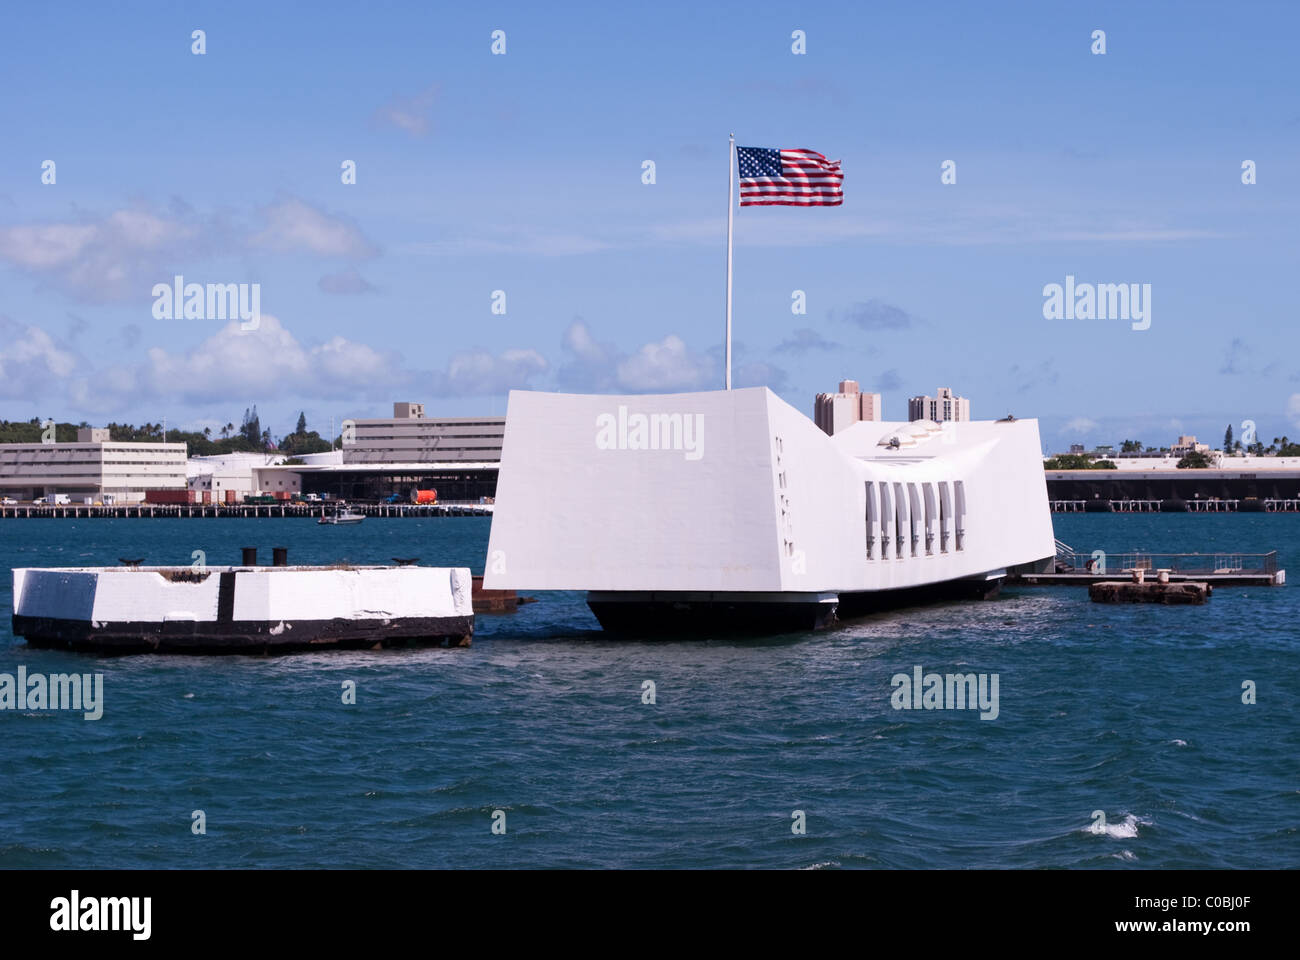 Pearl Harbor war monument. USS Arizona Memorial, Oahu Hawaii. - Stock Image